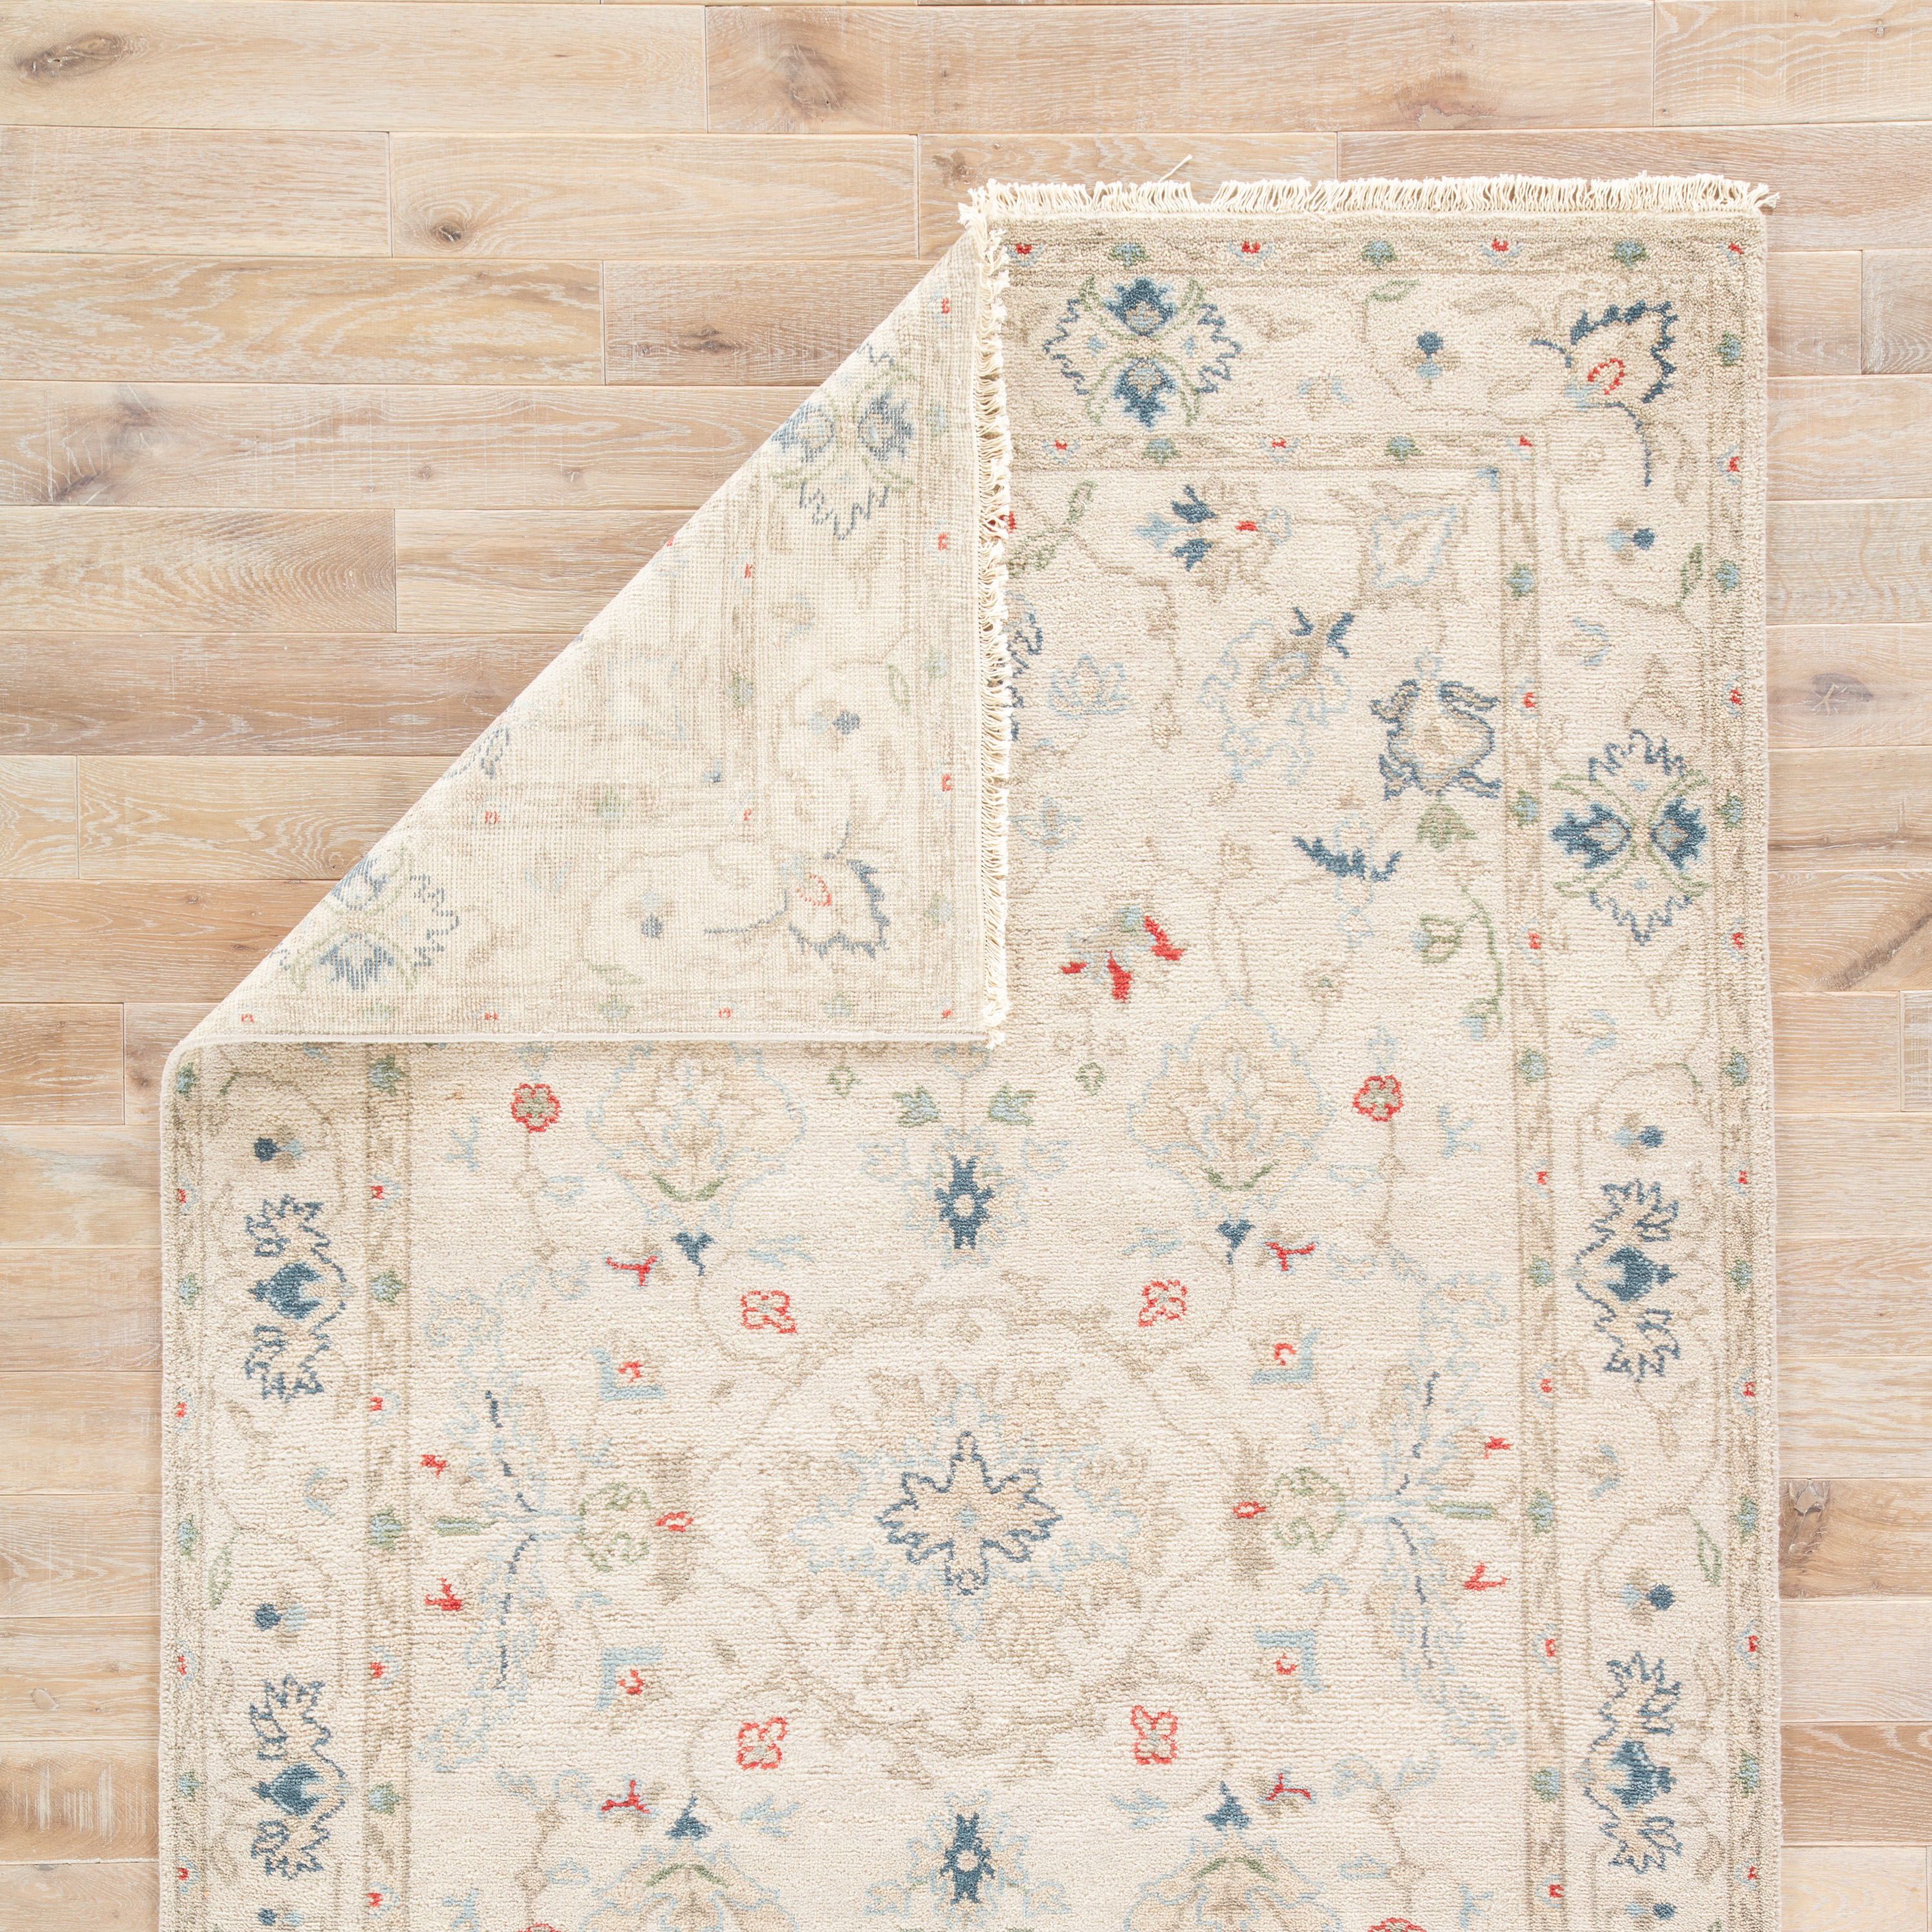 Hacci Hand-Knotted Floral Cream/ Blue Area Rug (8' X 10')